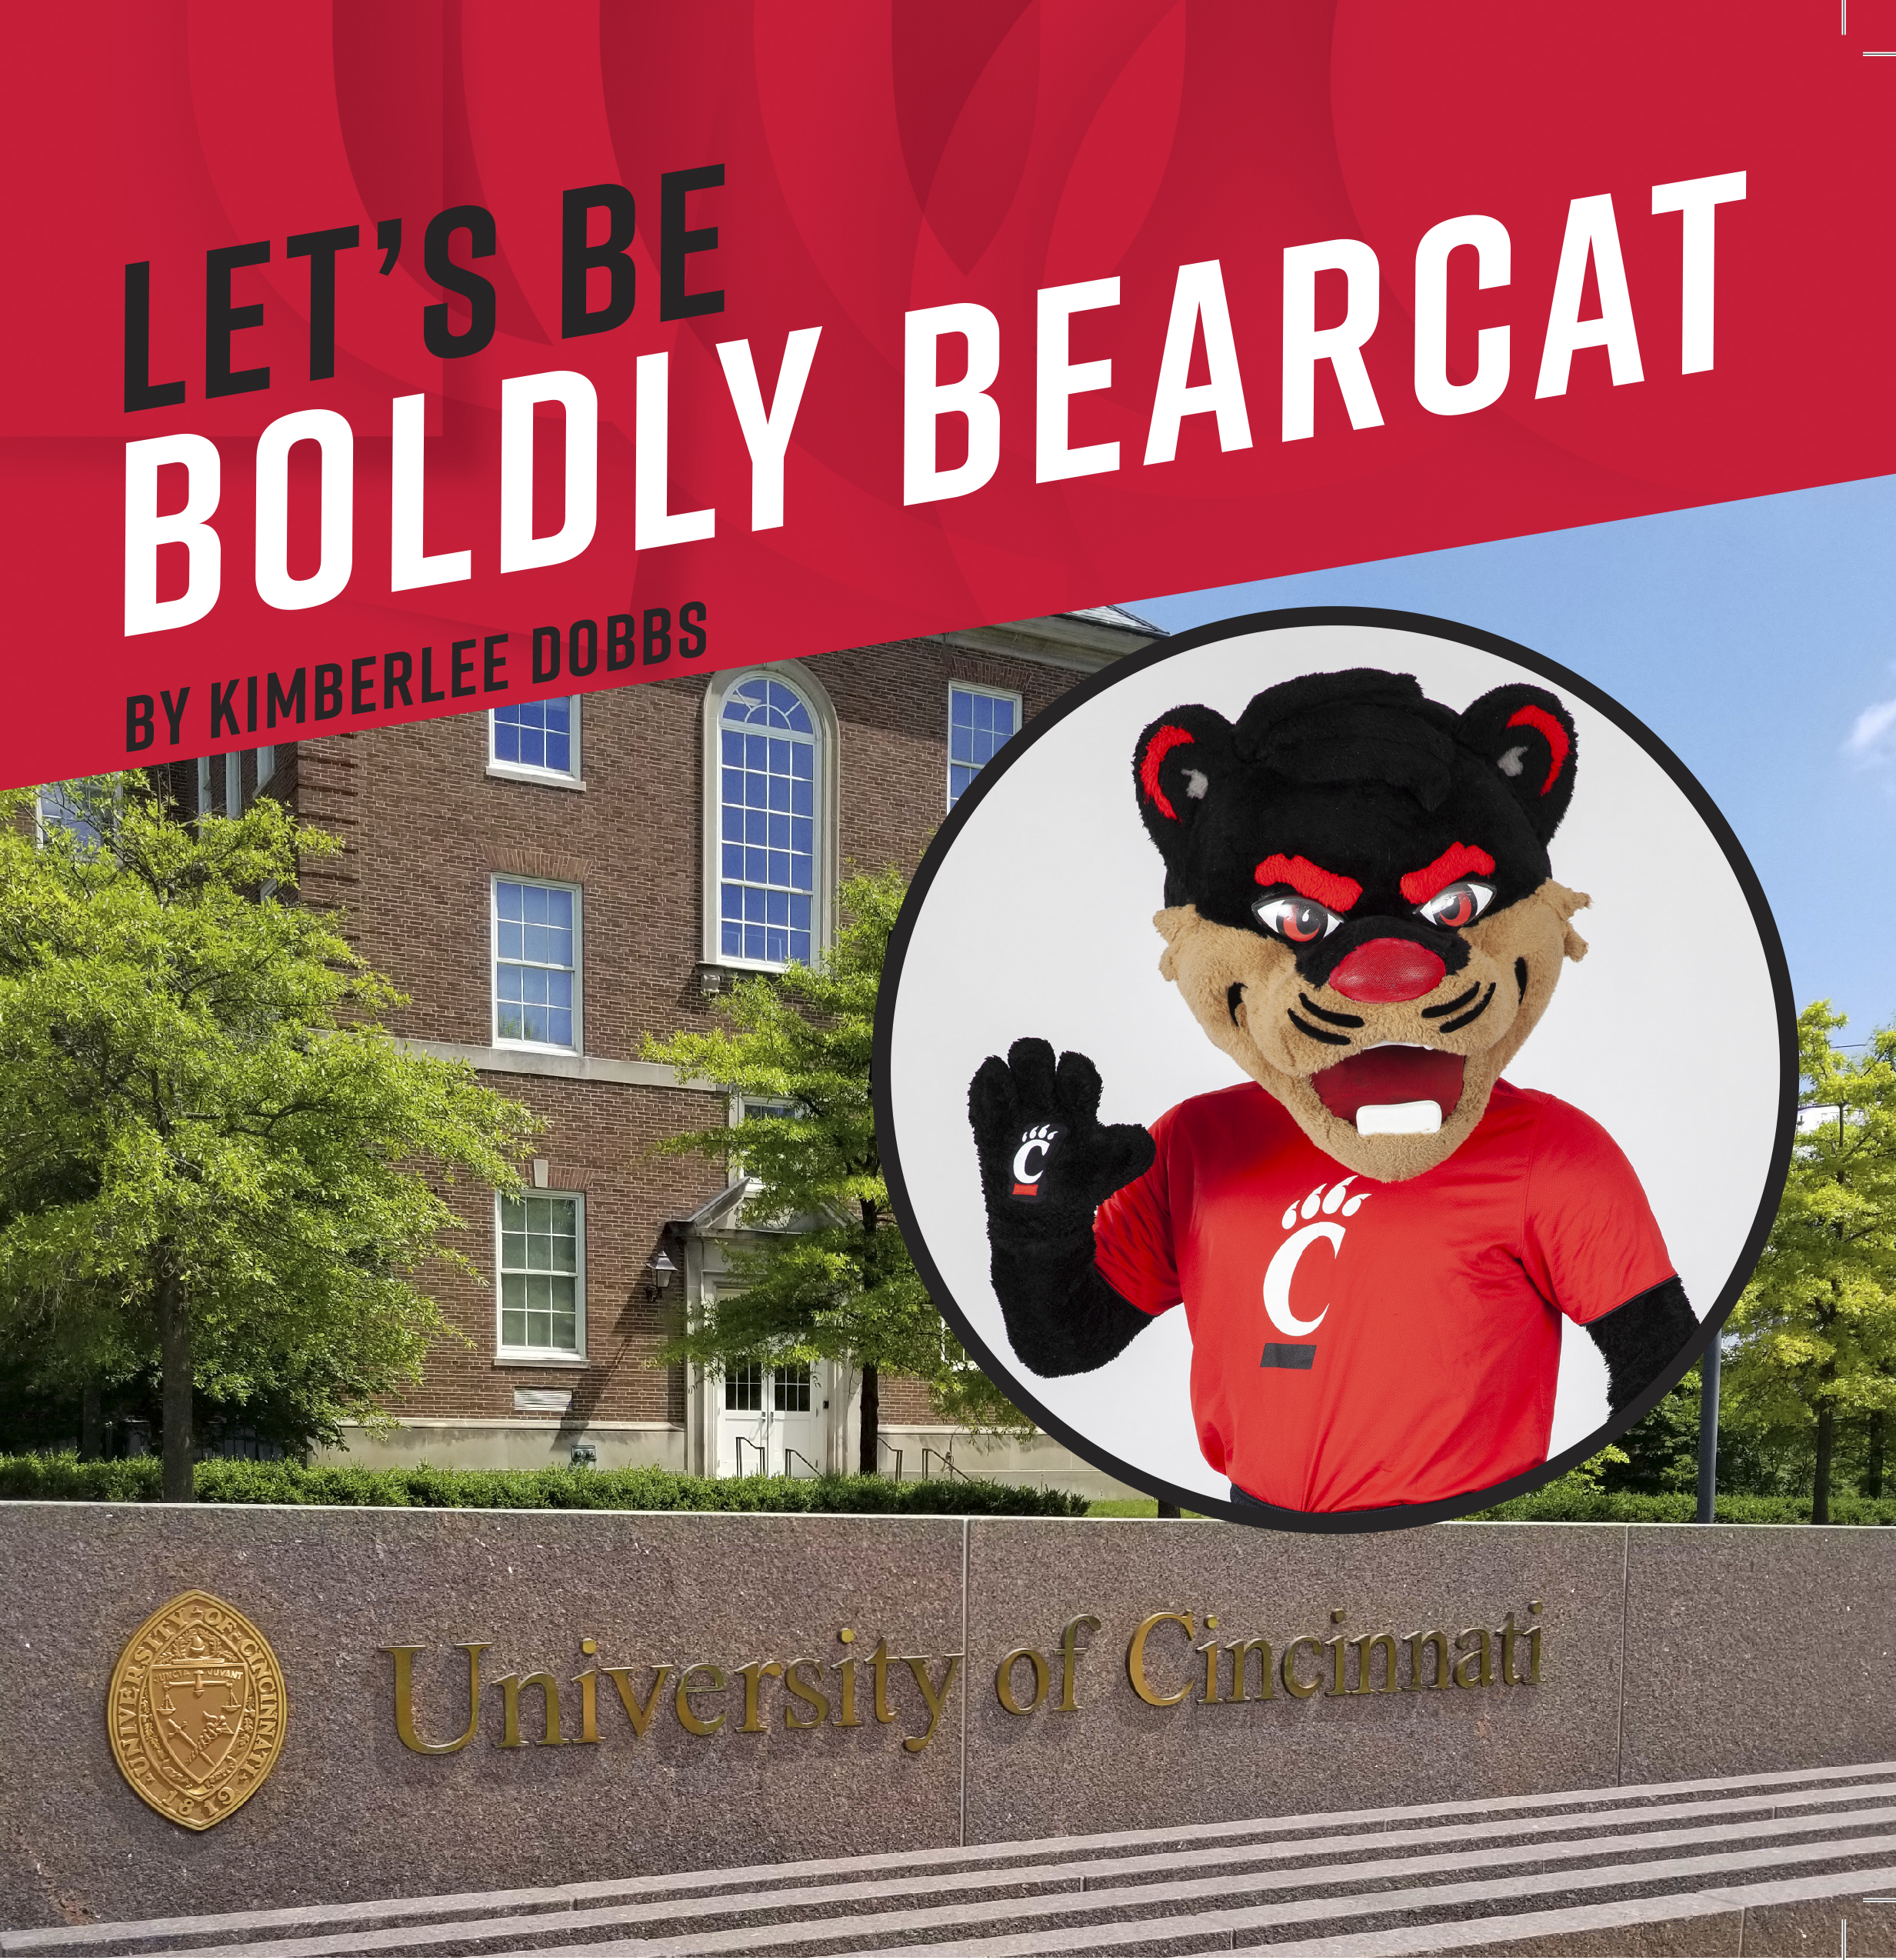 Let's Be Boldly Bearcat